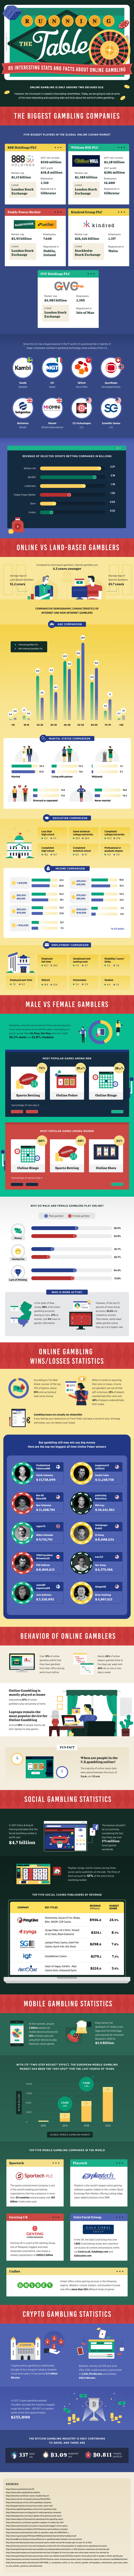 Running The Table Infographic